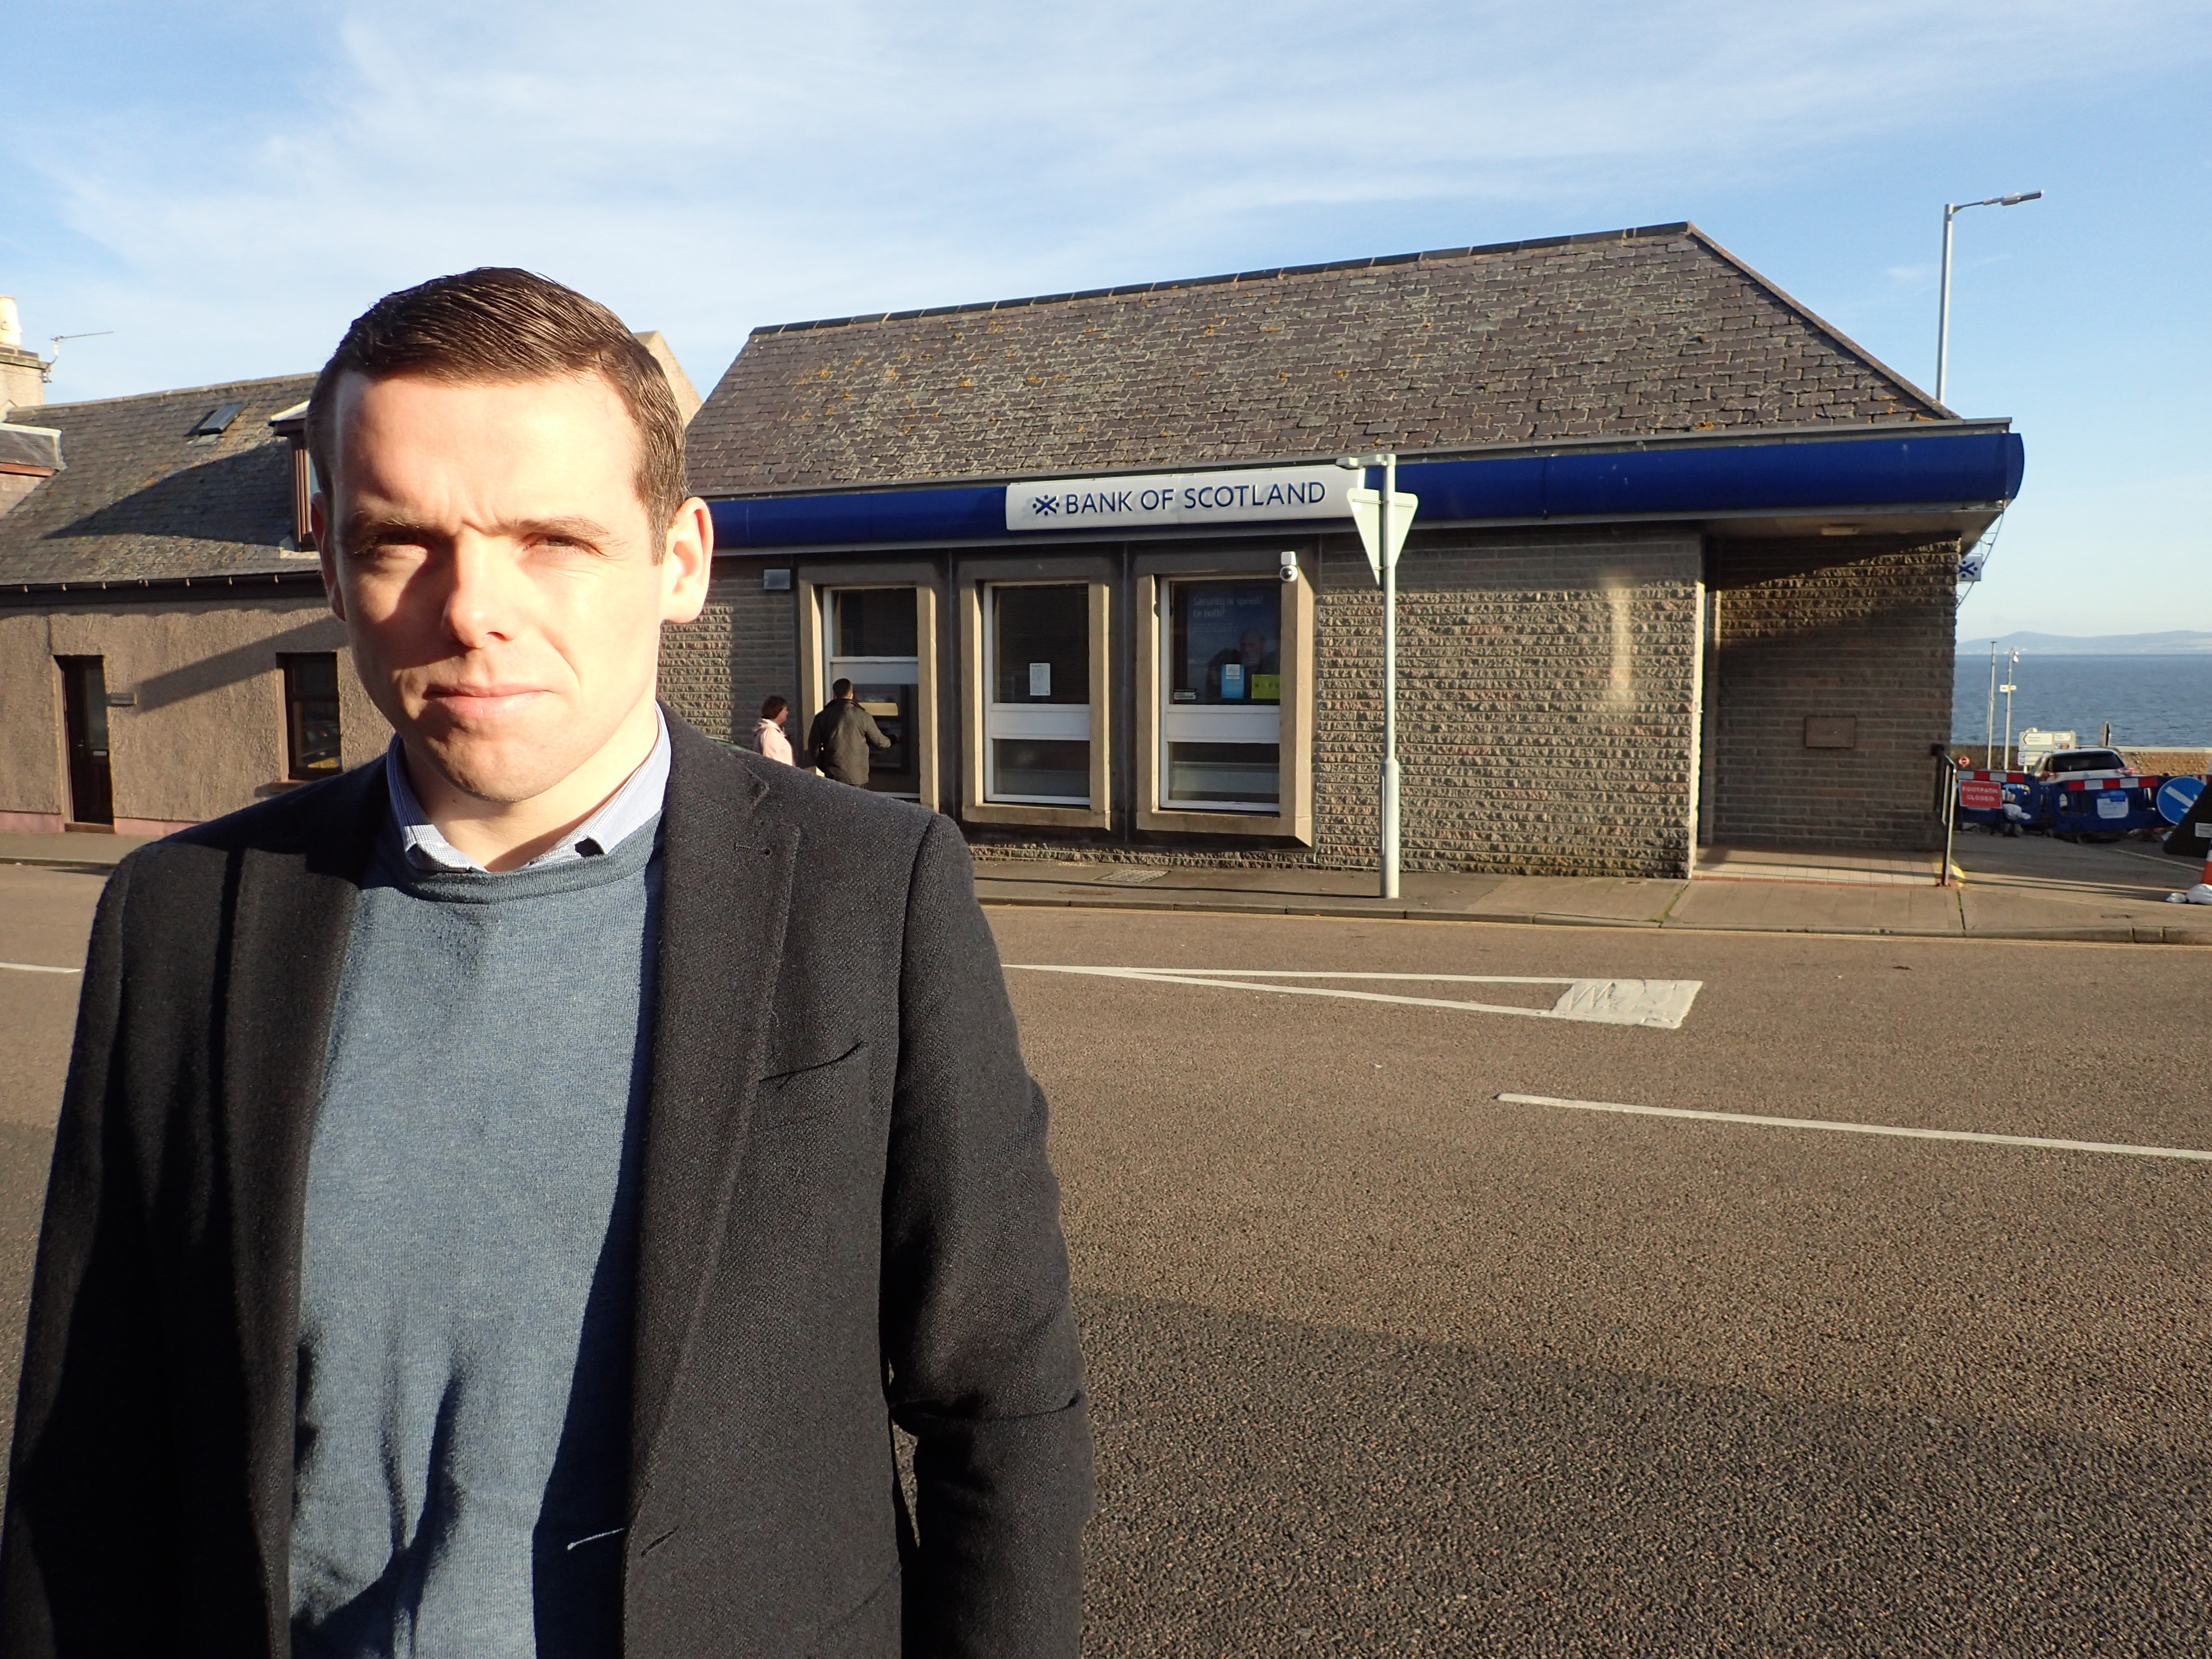 Douglas Ross at Lossiemouth Bank of Scotland